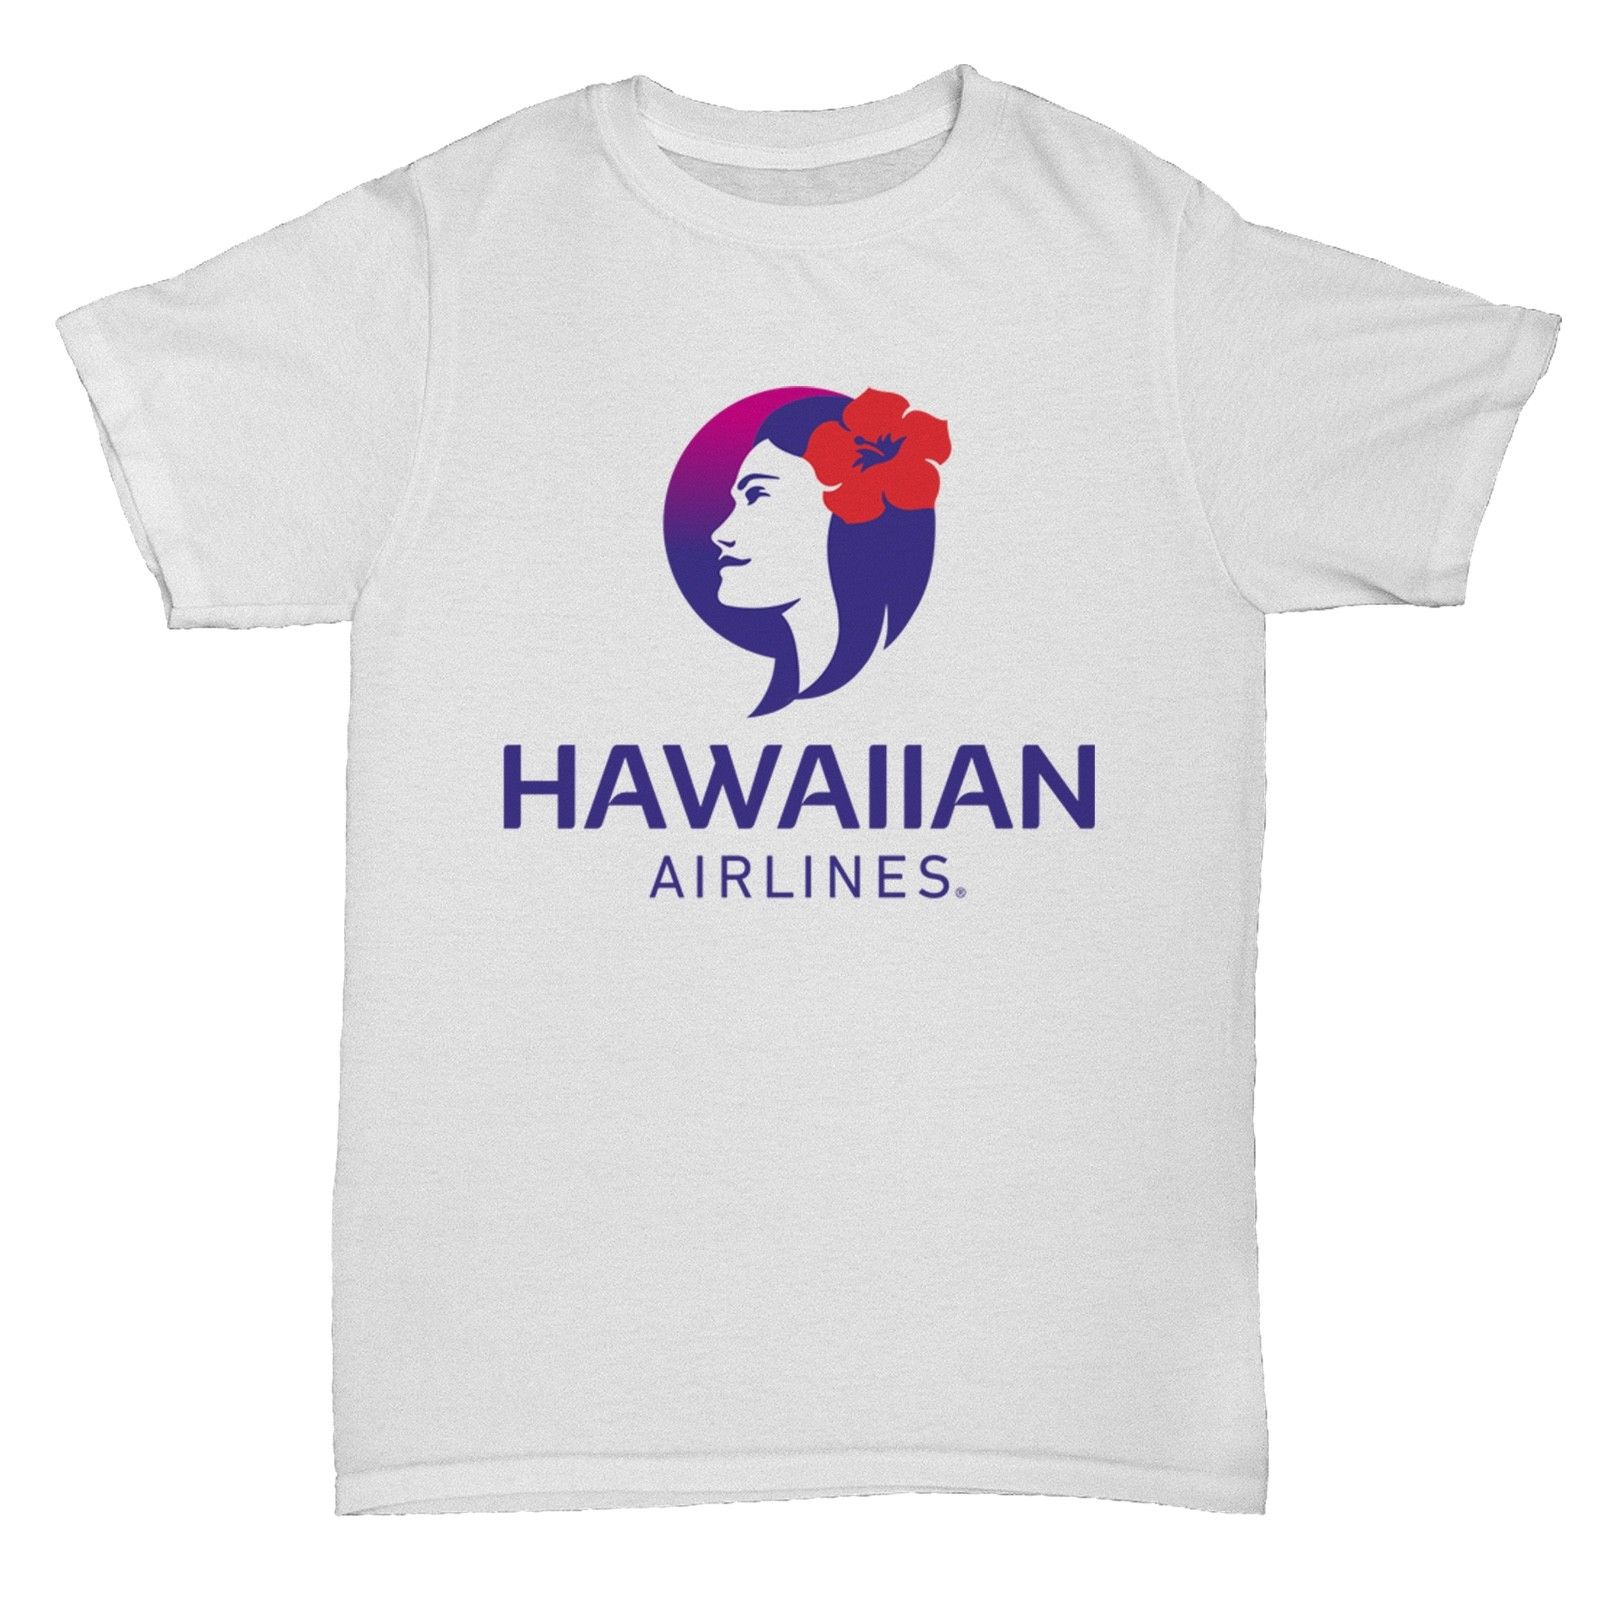 HAWAIIAN AIRLINES RETRO AEROPLANE BOAC PAN AM T SHIRT O Neck Shirt Plus Size T-Shirt O-N ...